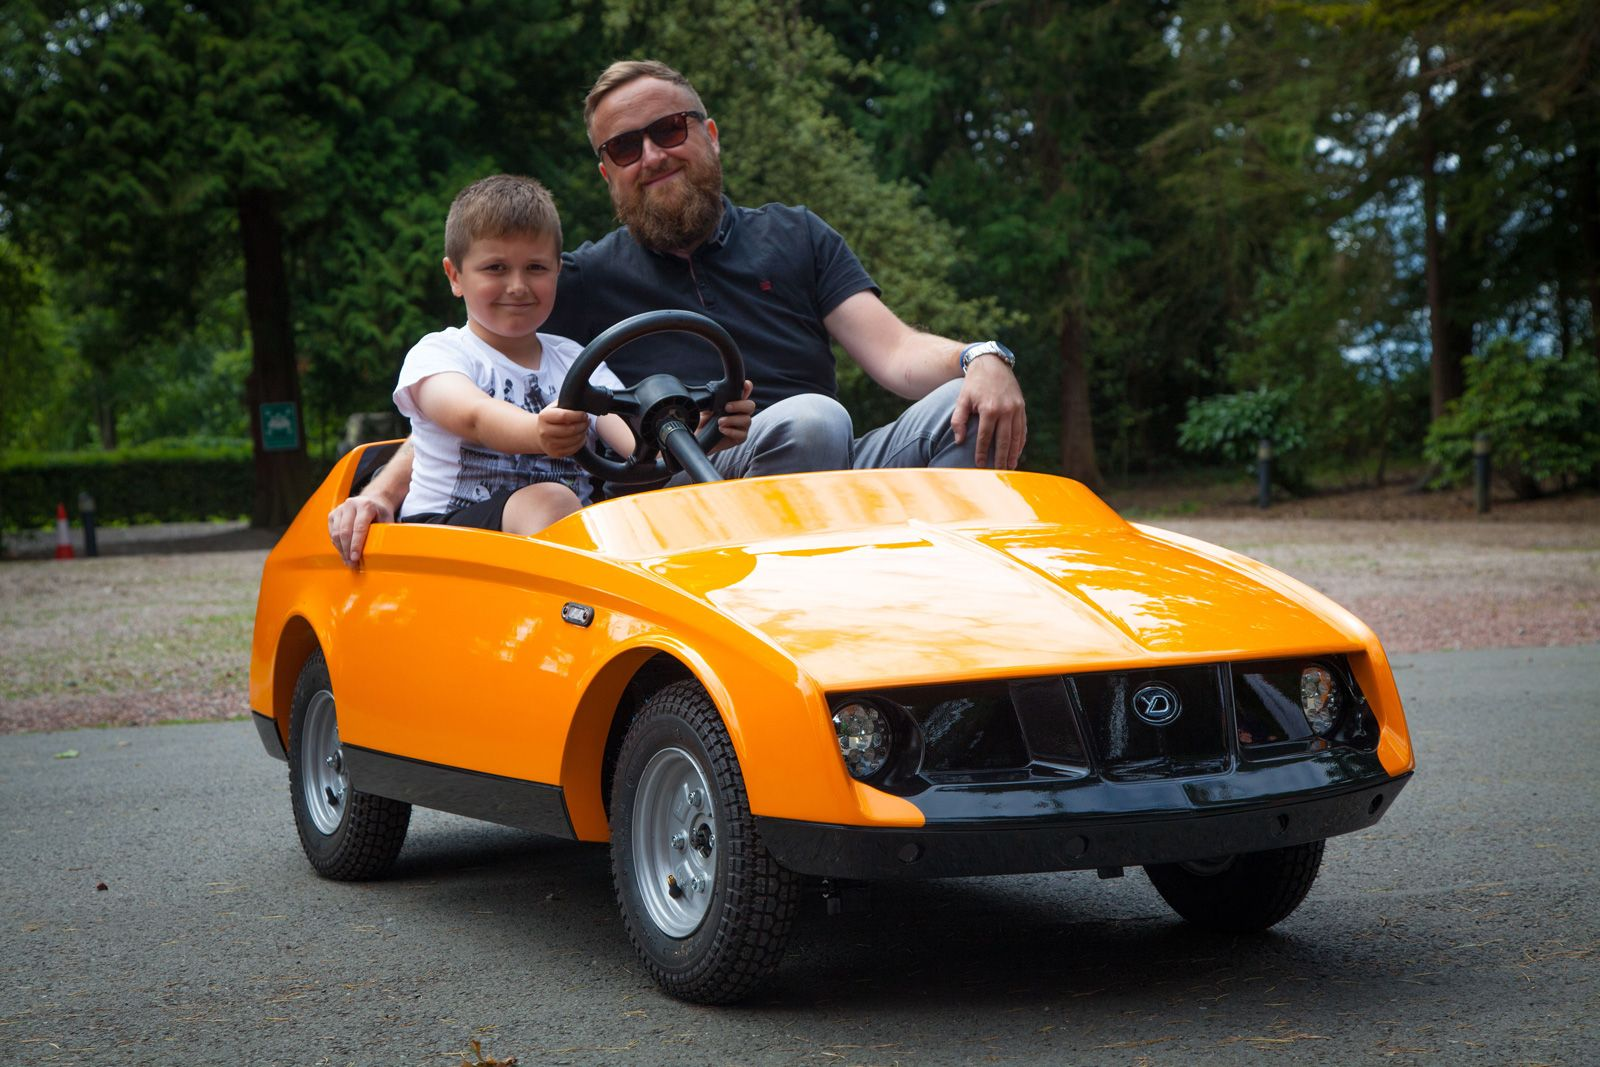 Here S The World S First Electric Car Designed For Kids